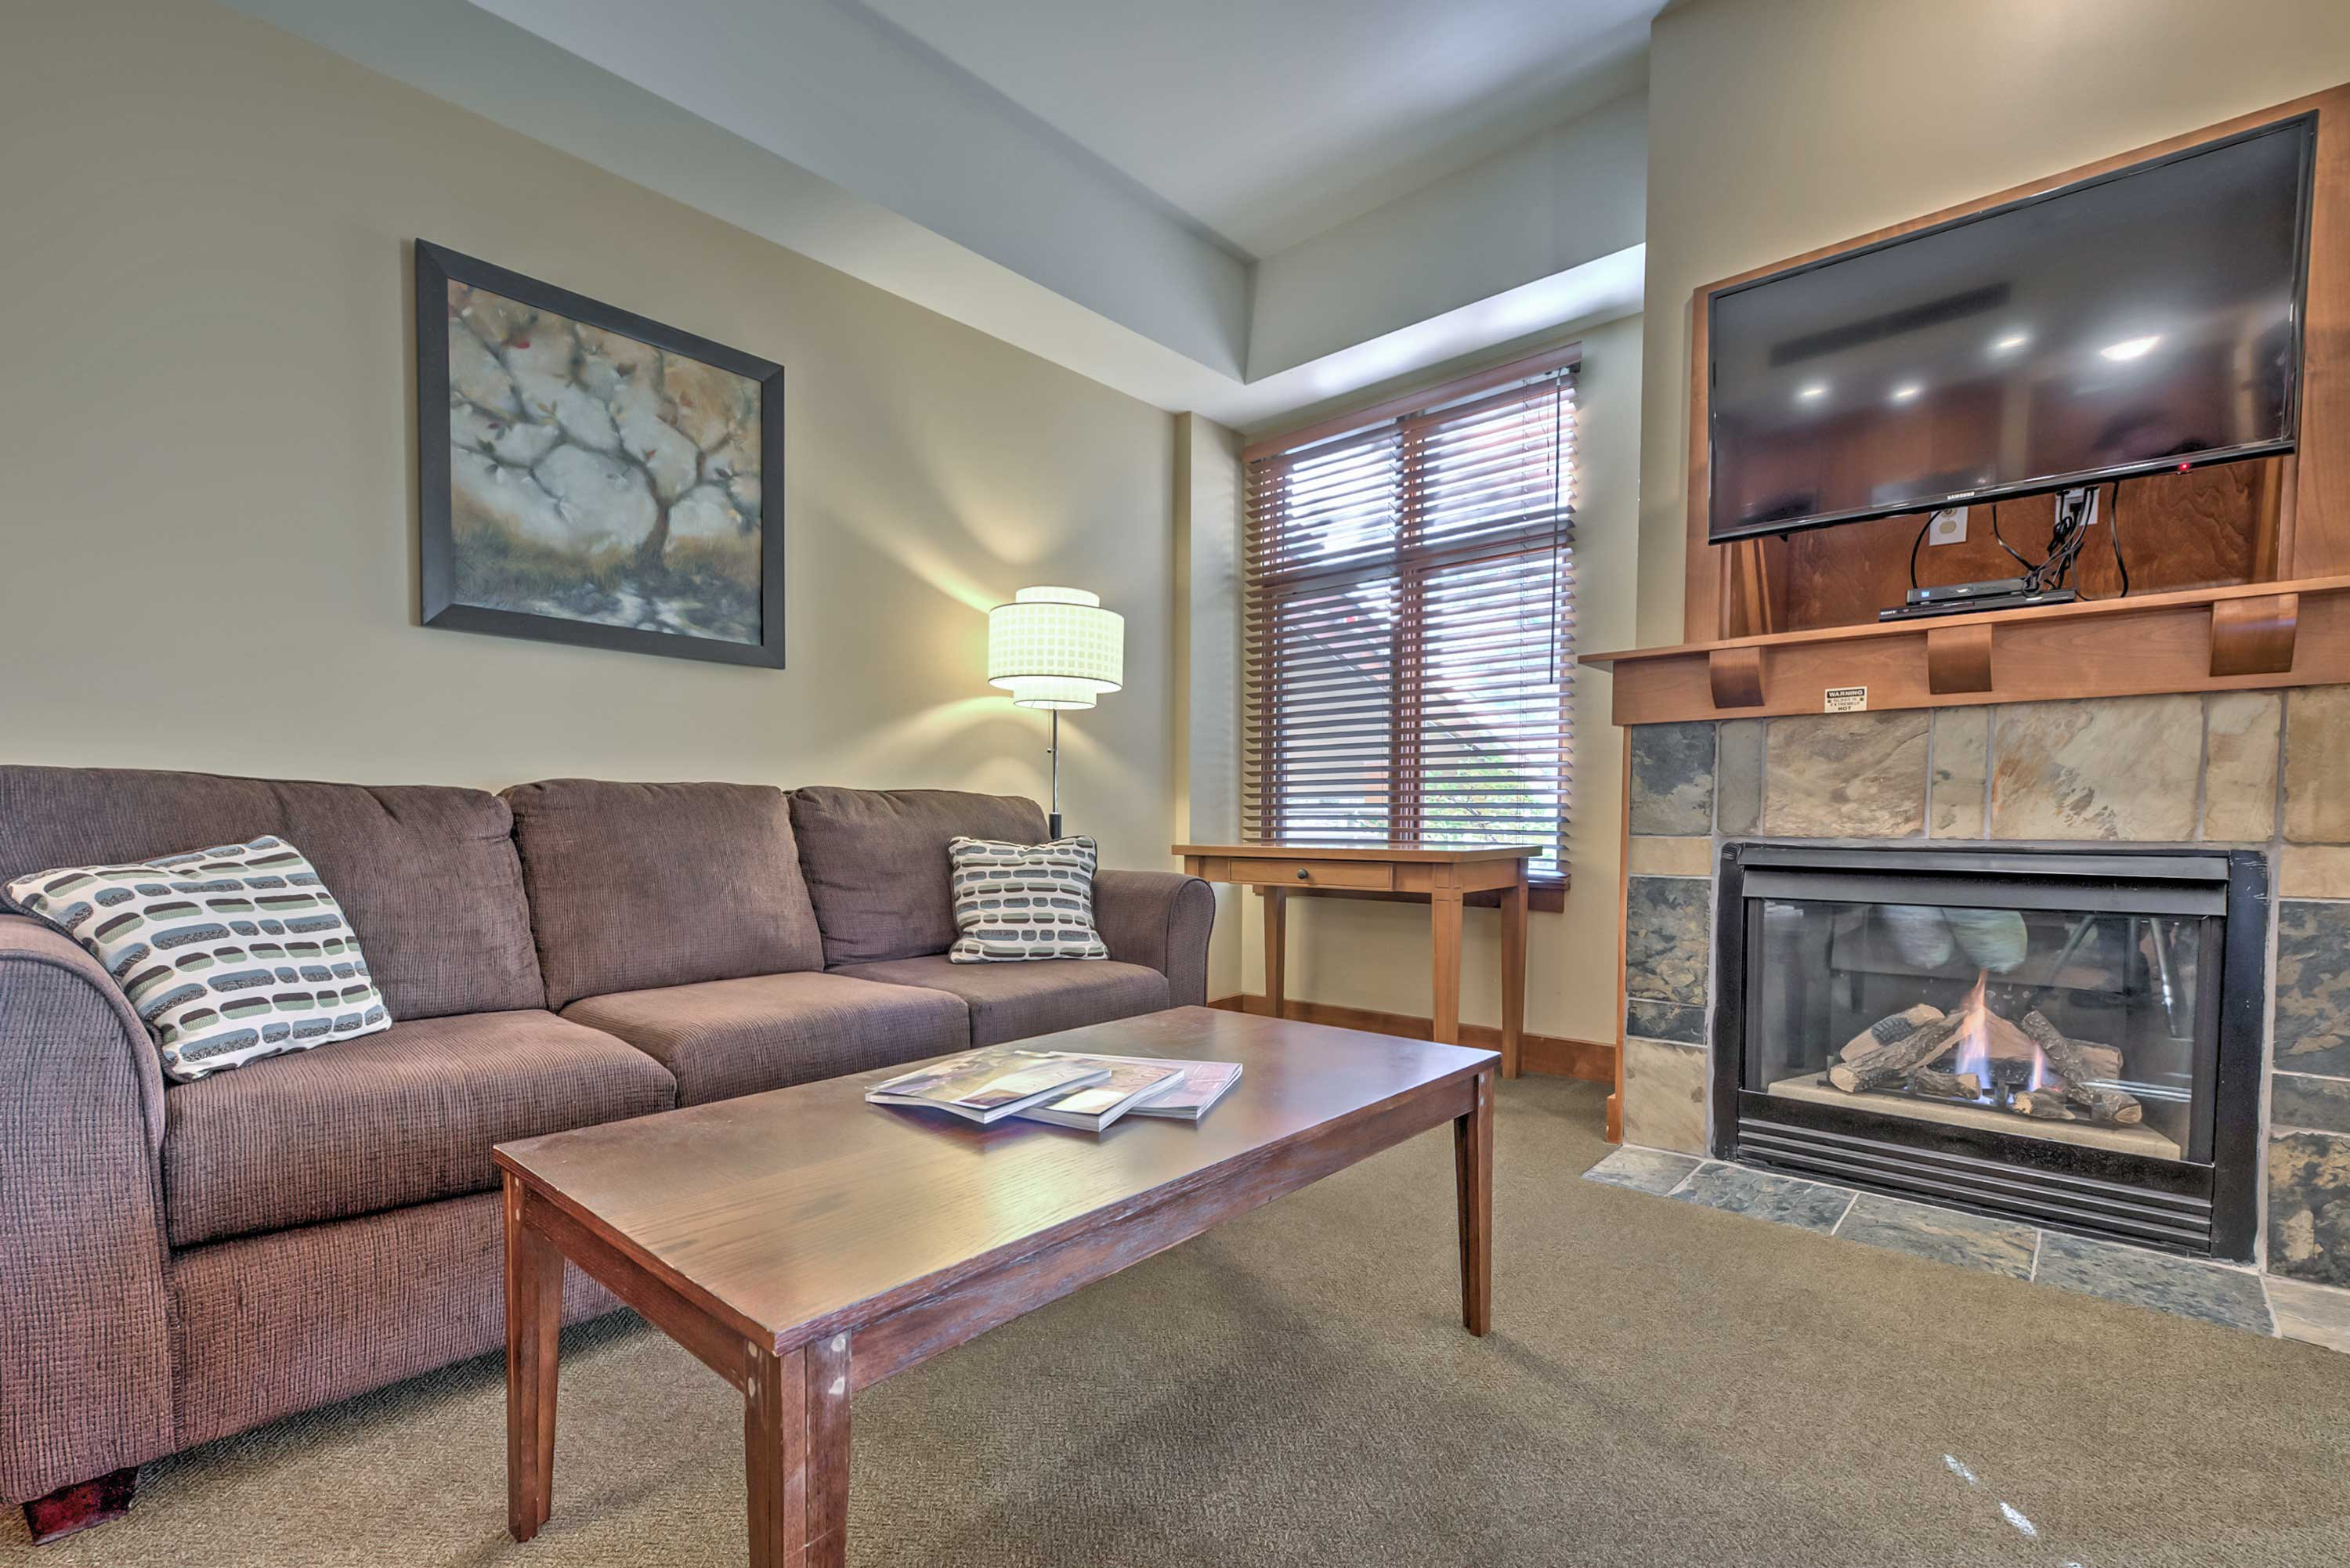 Cozy up by the gas fireplace!